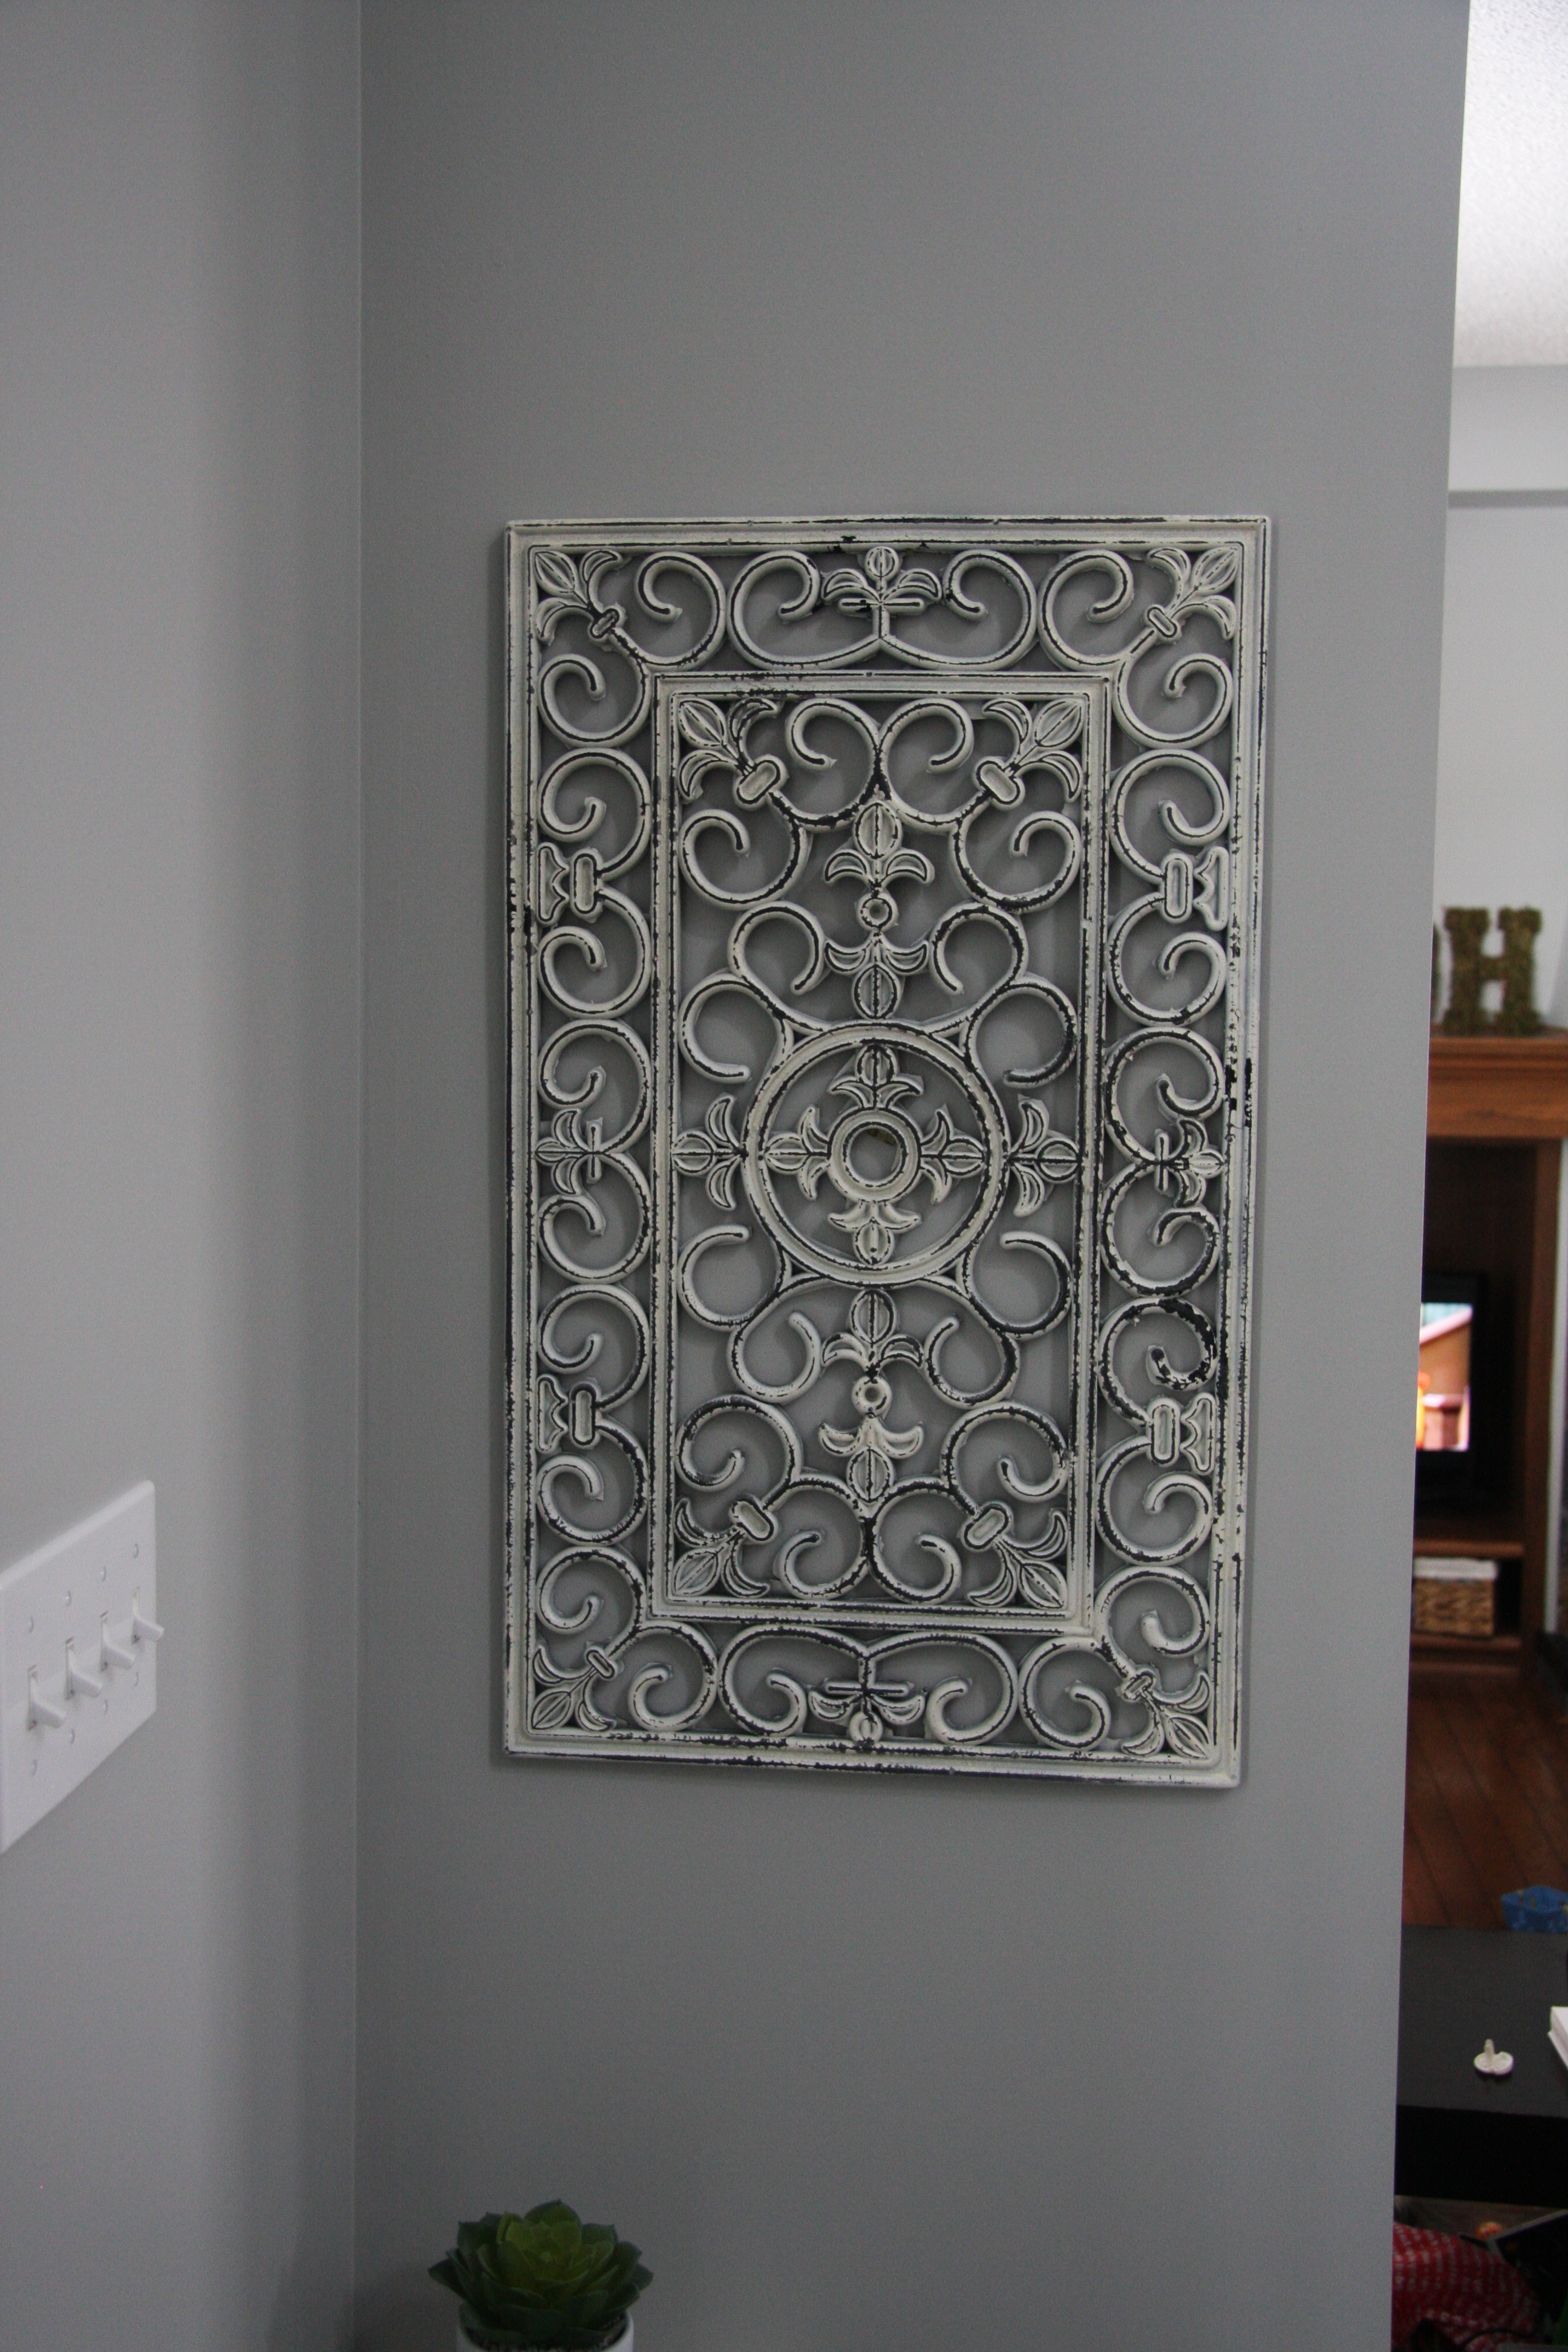 Newest Shabby Chic Wall Art – Lilybuttondesign Regarding Shabby Chic Wall Art (View 9 of 15)